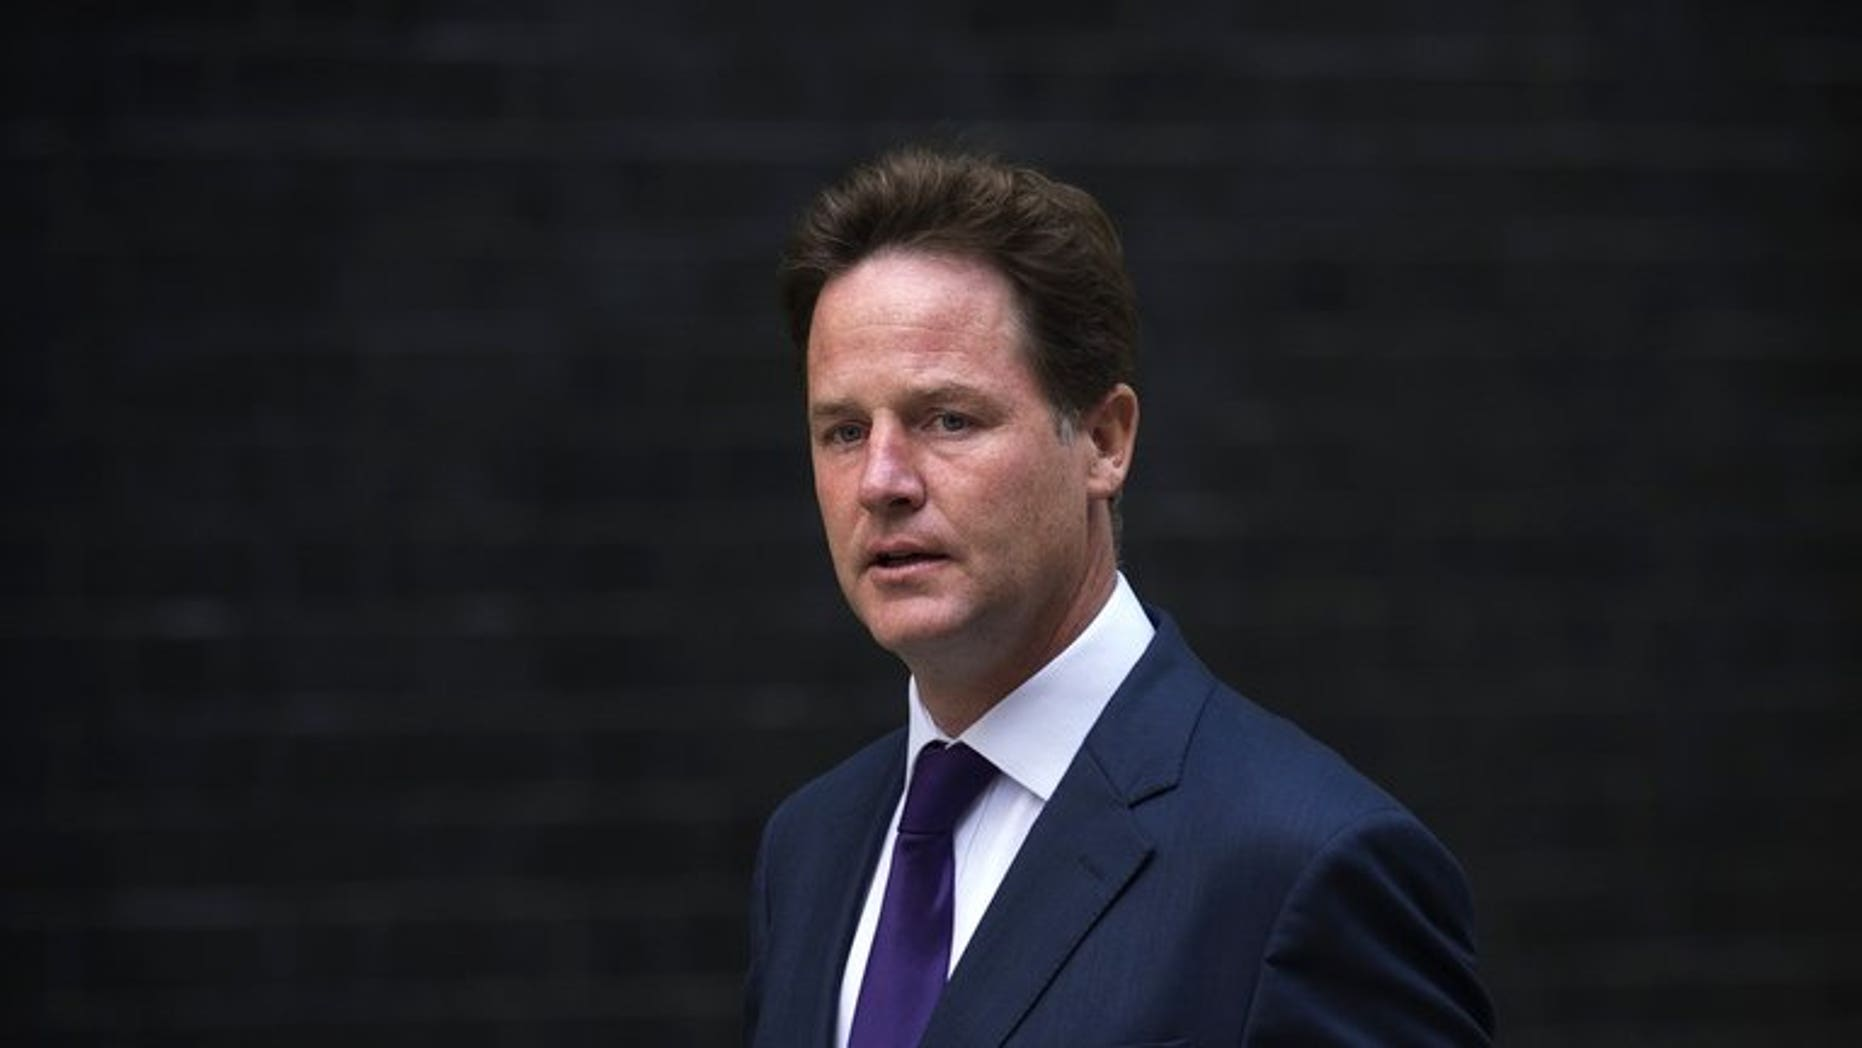 British Deputy Prime Minister Nick Clegg arrives at 10 Downing Street in central London on August 27, 2013.